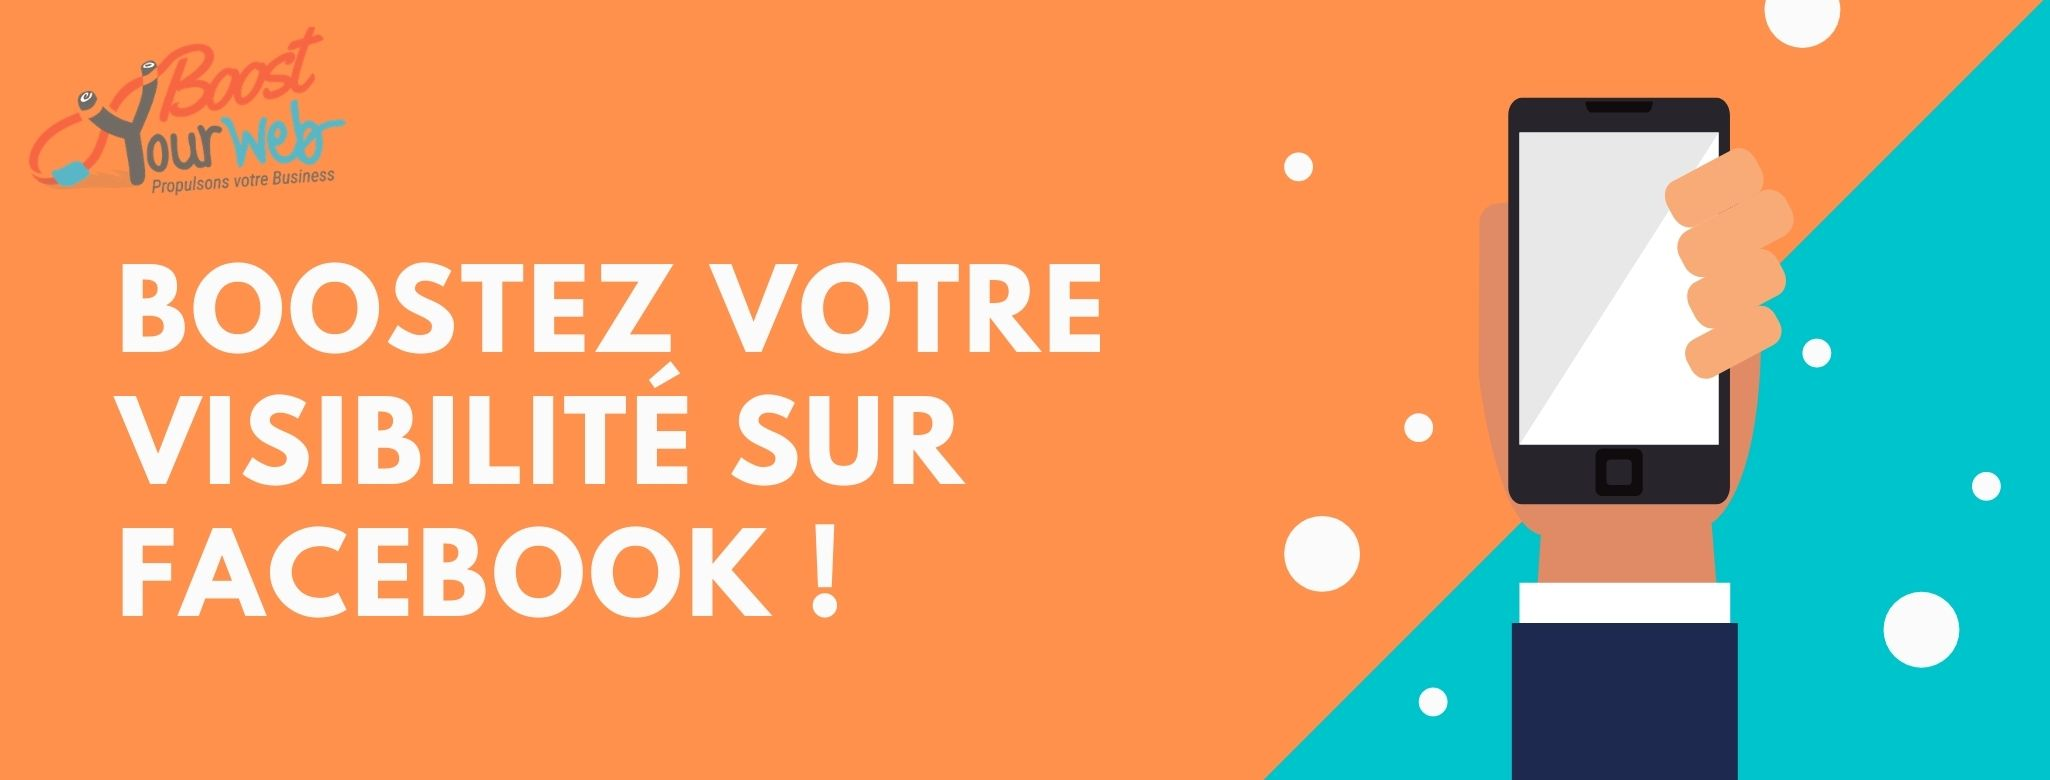 Optimiser les formats d'images Facebook